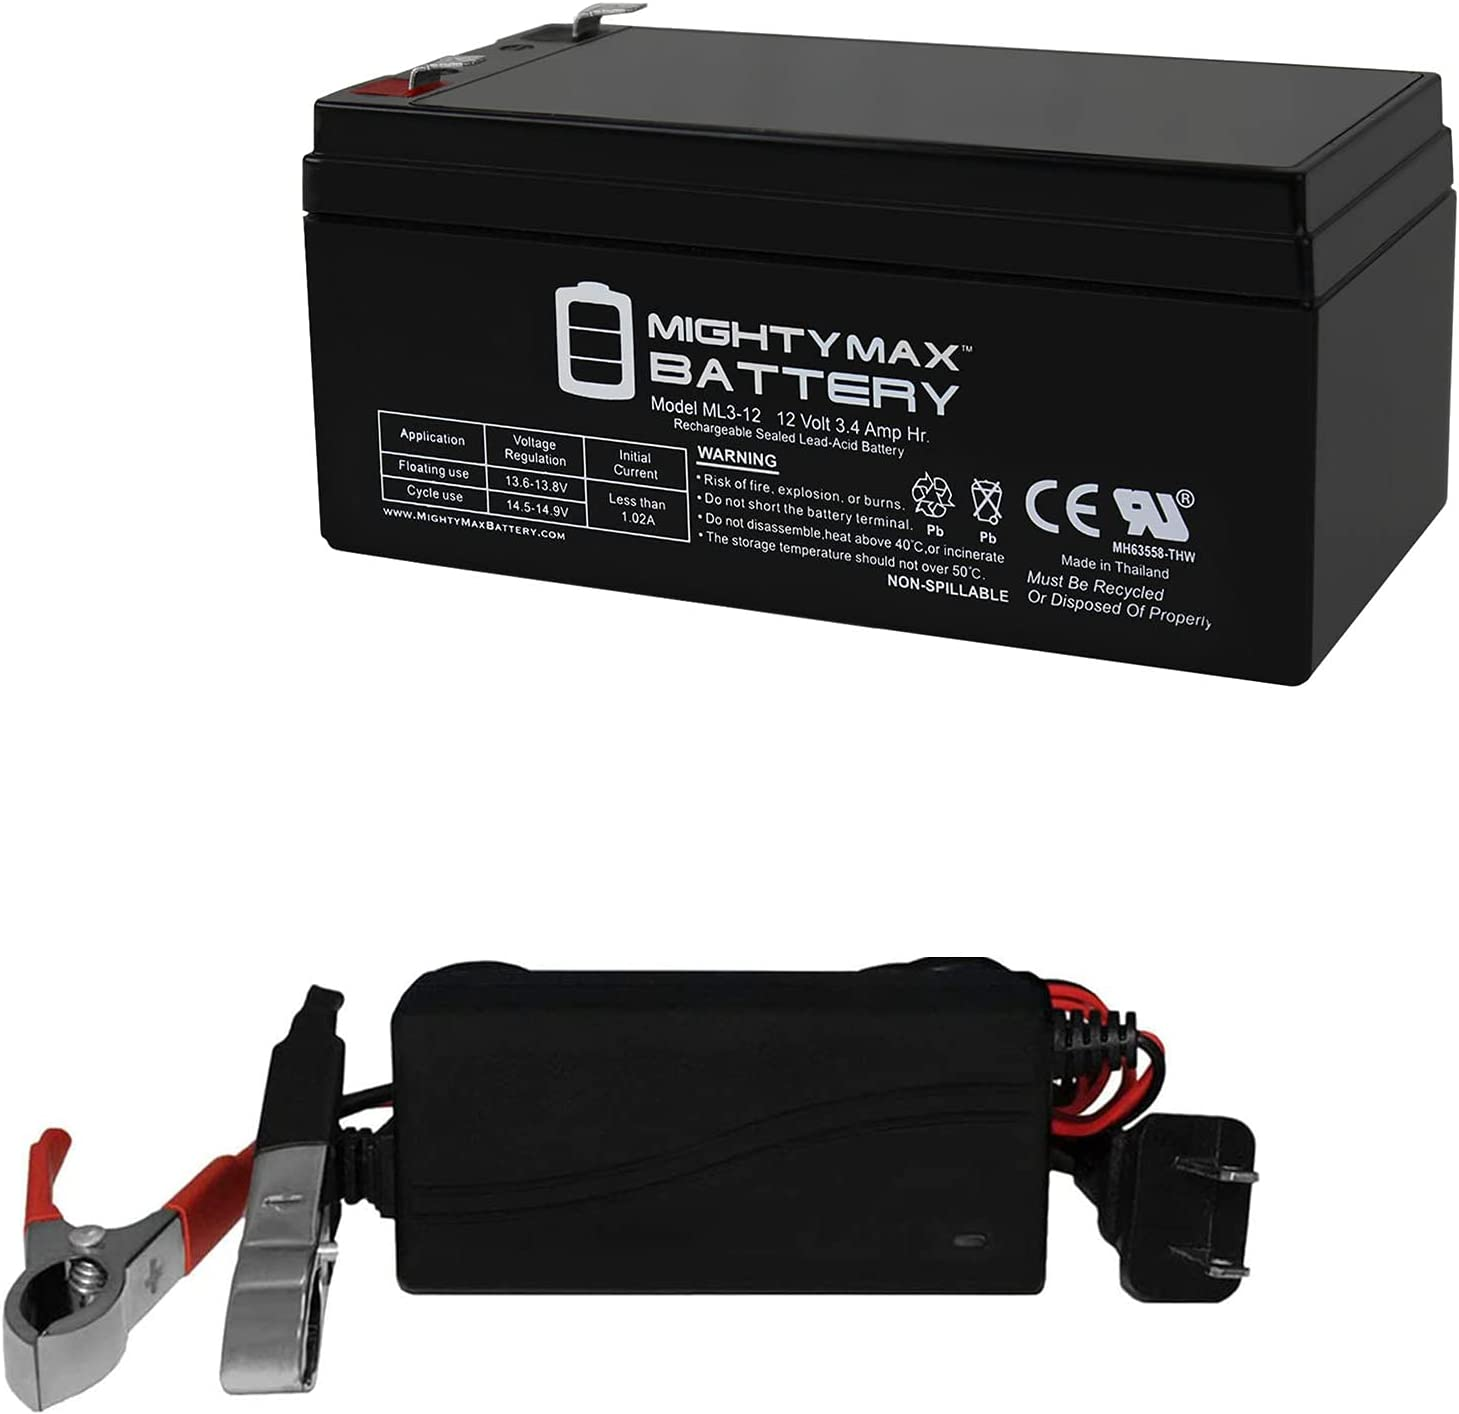 Mighty Max Battery 12V 3.4Ah Replaces Alexander 90315, G1230, G1